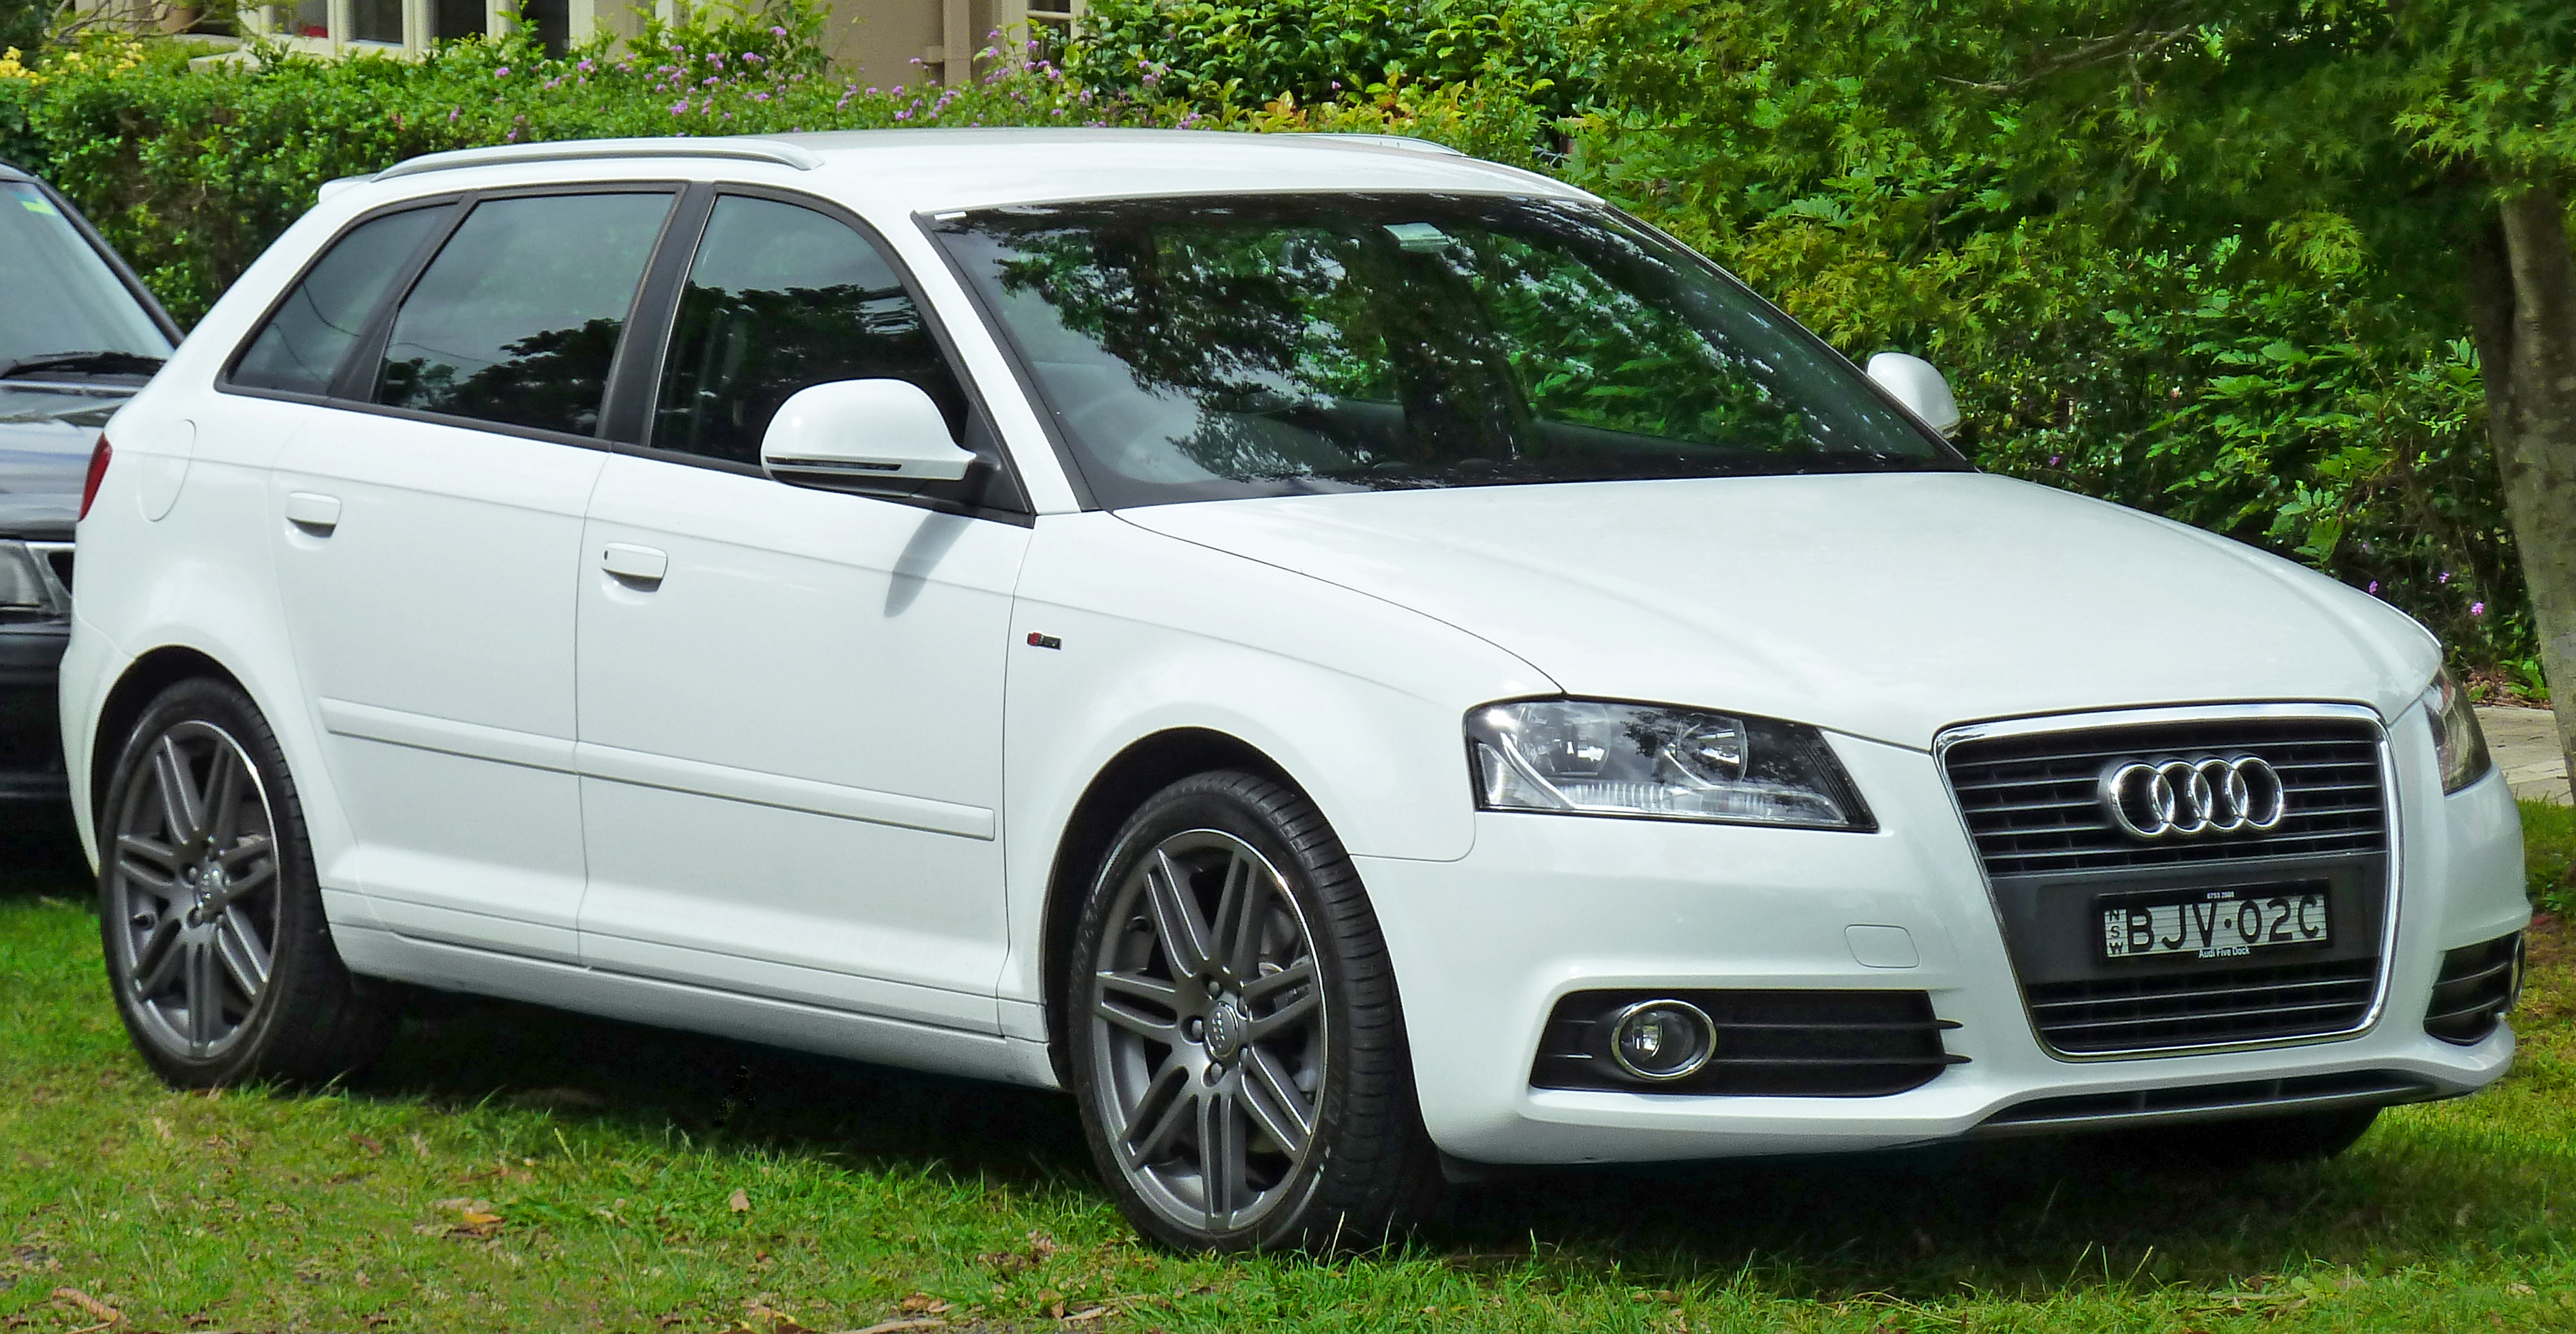 file 2009 audi a3 8pa 2 0 tdi 5 door sportback 2011 04 02 wikimedia commons. Black Bedroom Furniture Sets. Home Design Ideas